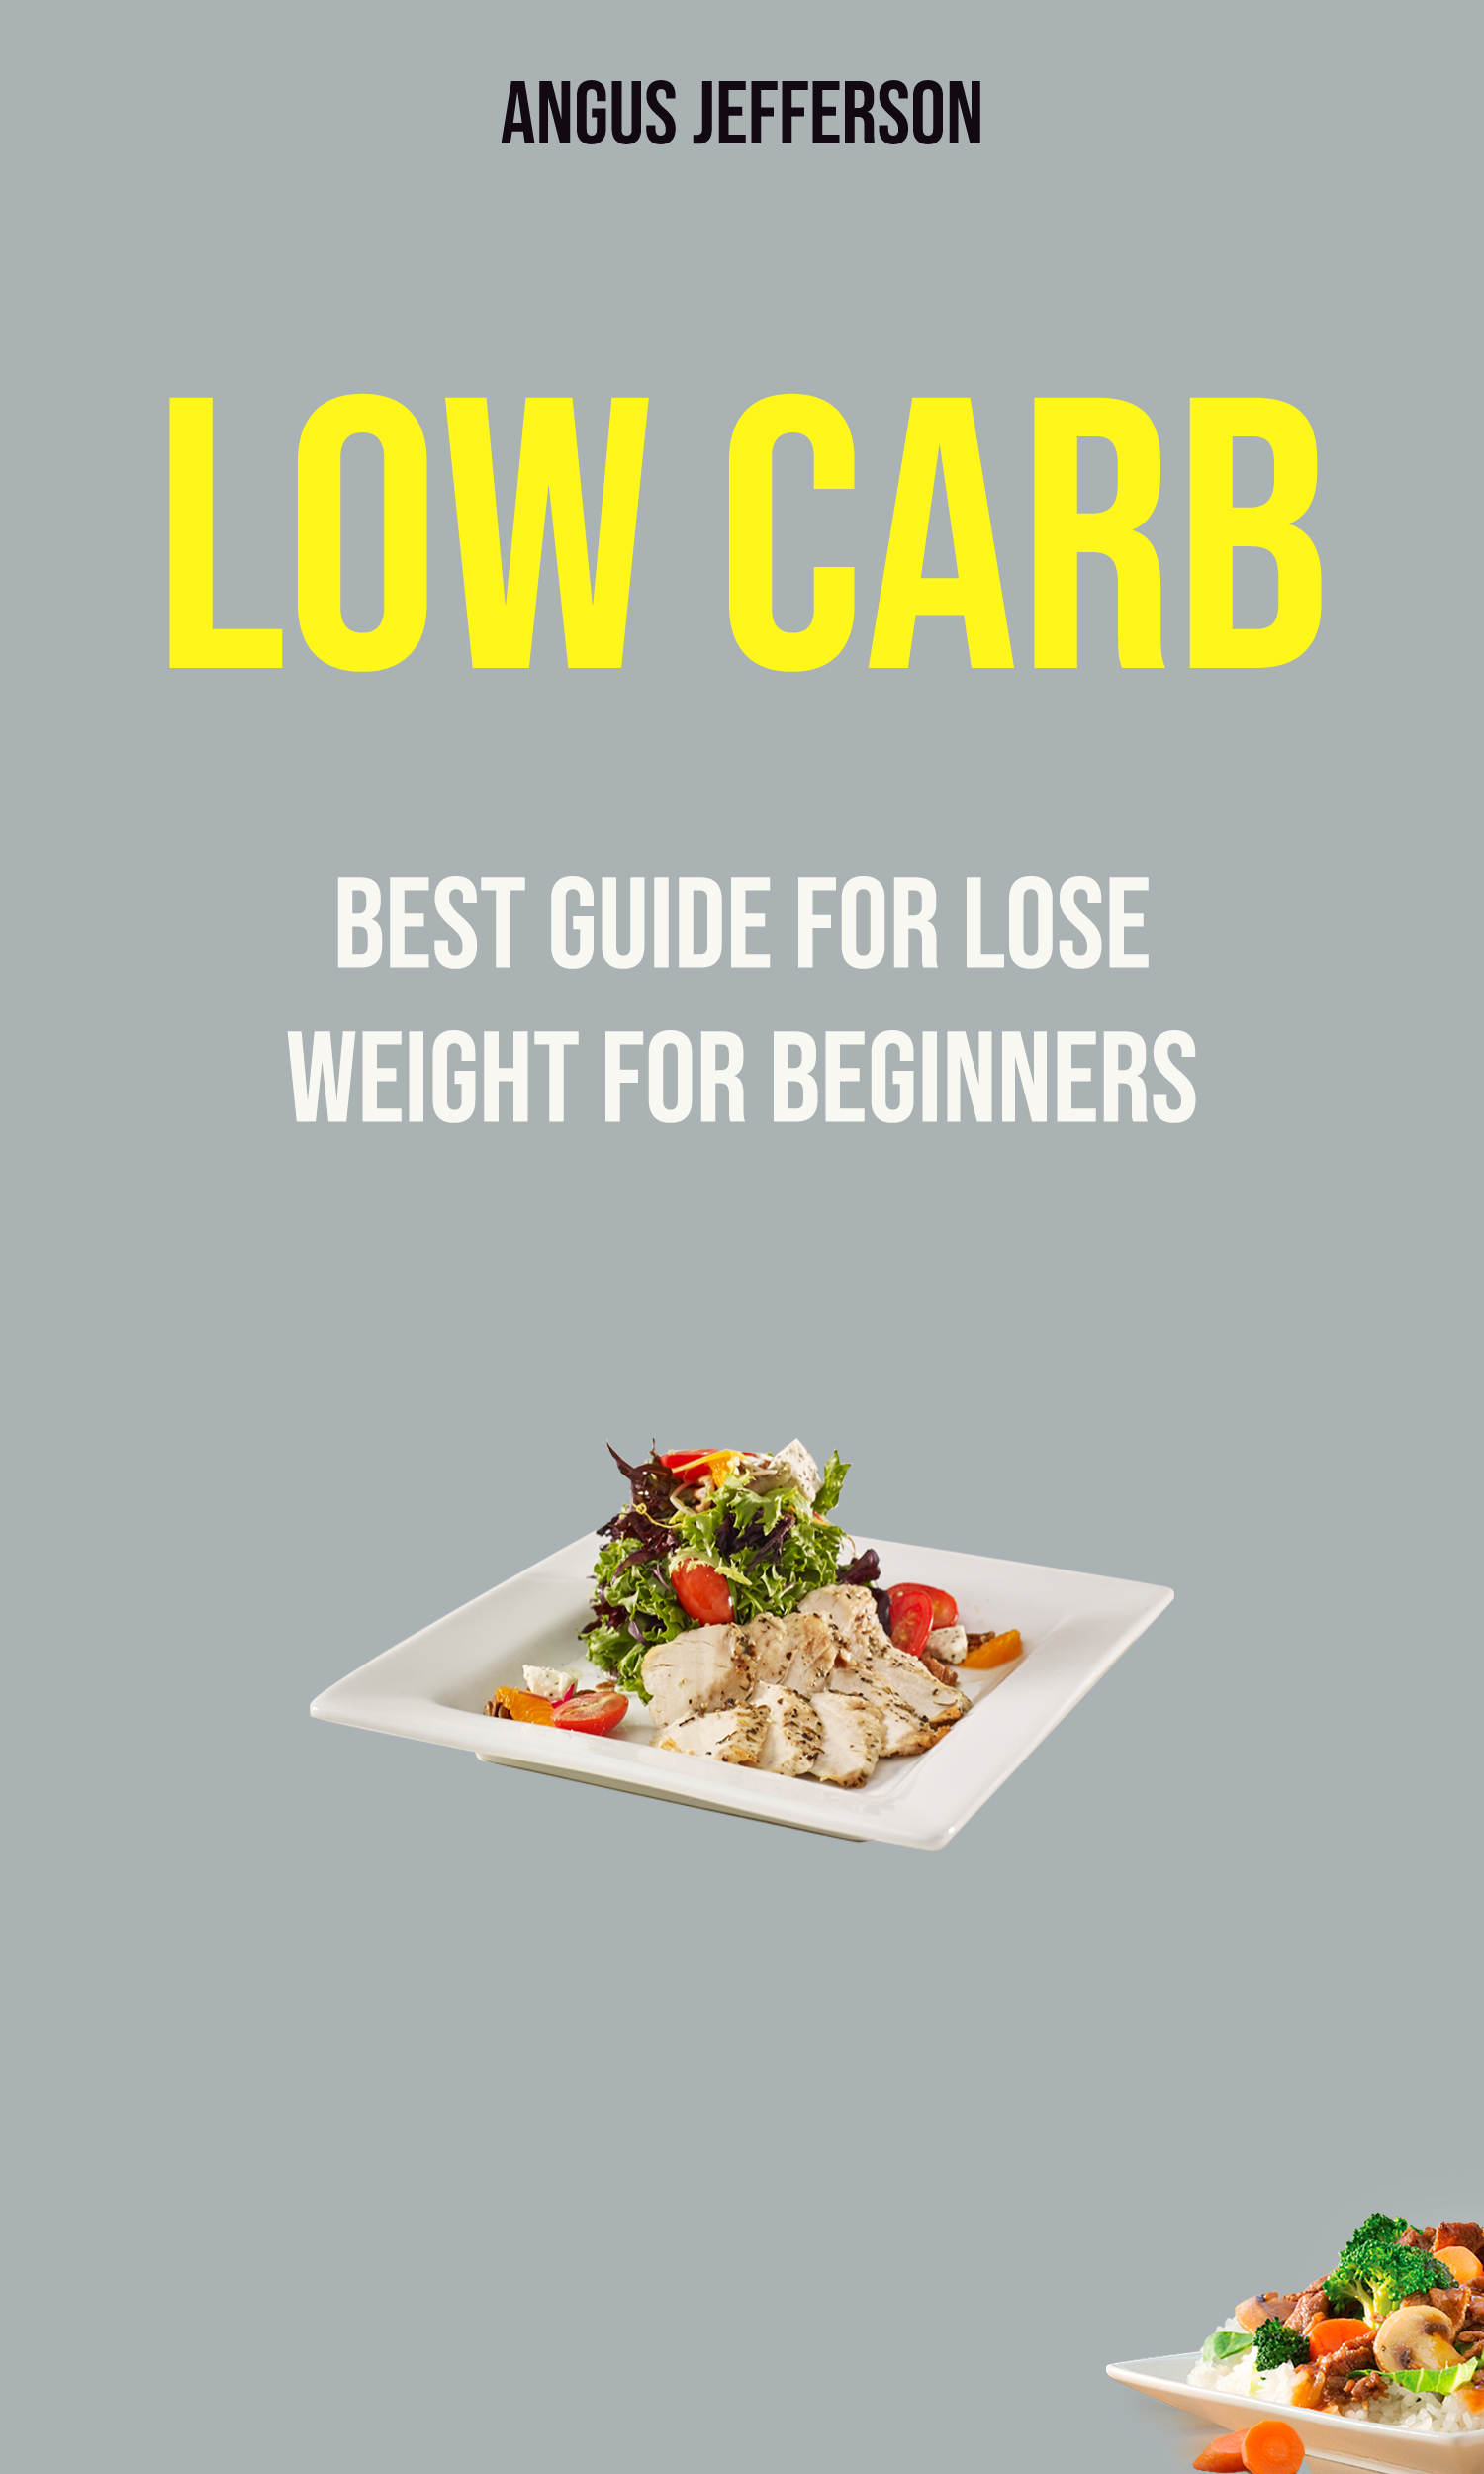 Low carb: best guide for lose weight for beginners